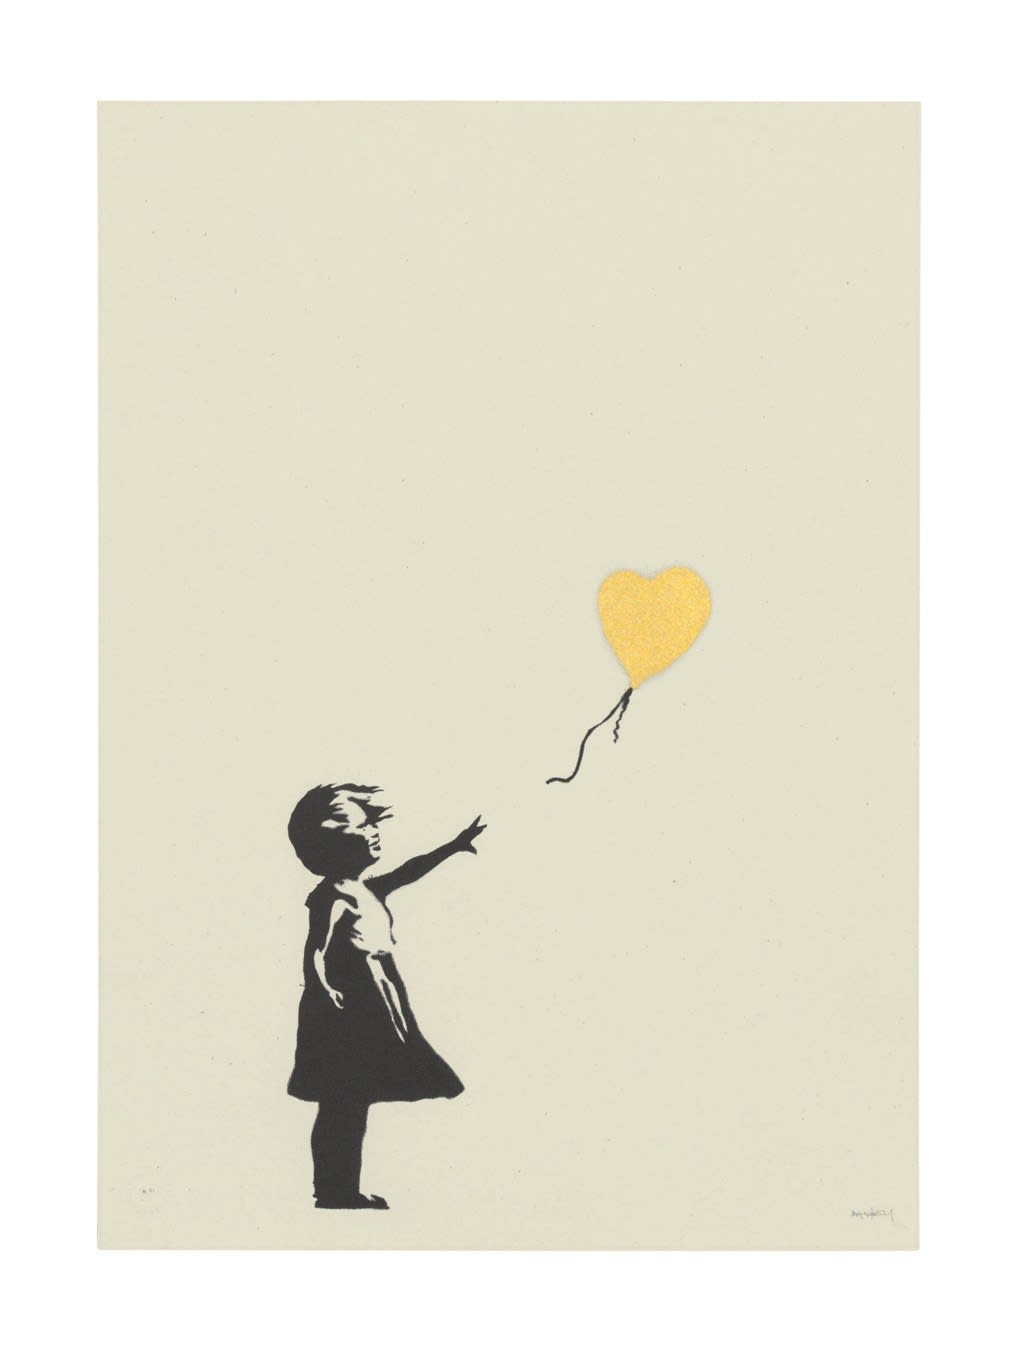 Girl with Balloon - Colour AP (Gold)., 2004 Screen print Signed 70 x 50 cm Edition of 88 Framed Pest Control COA Excellent Condition